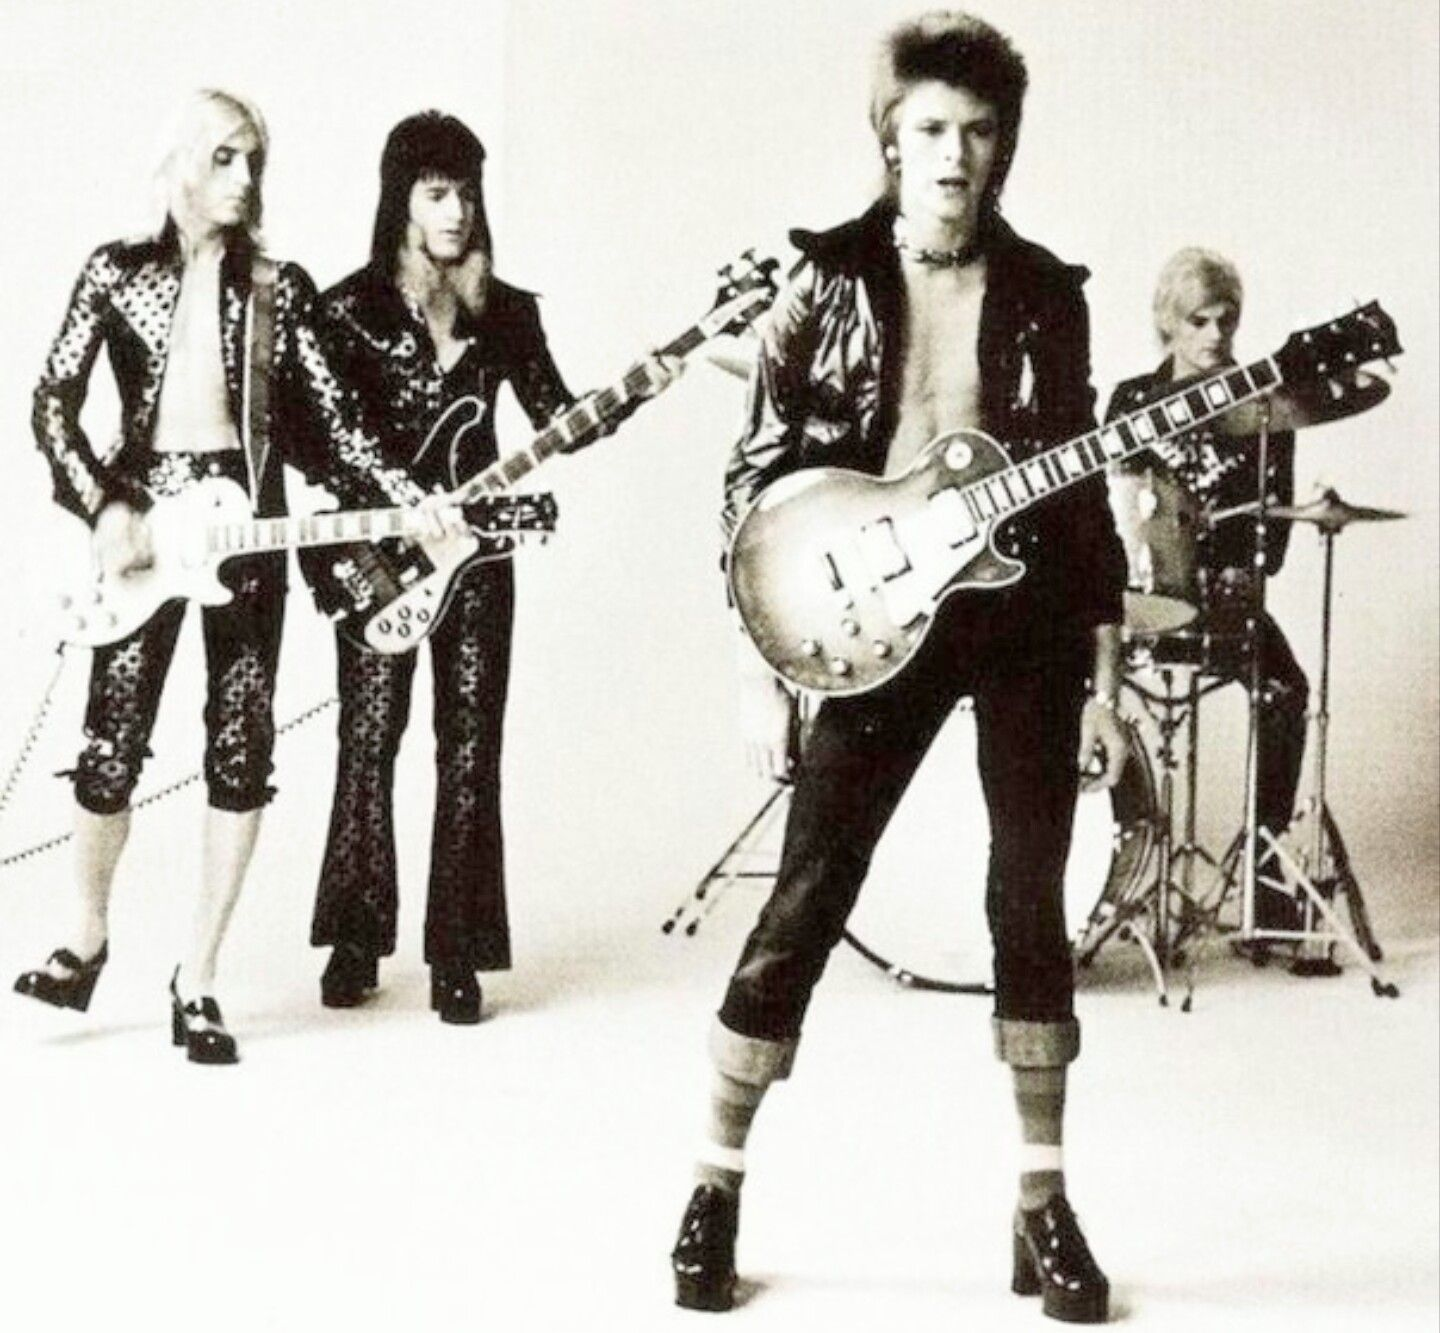 David Bowie and The Spiders From Mars